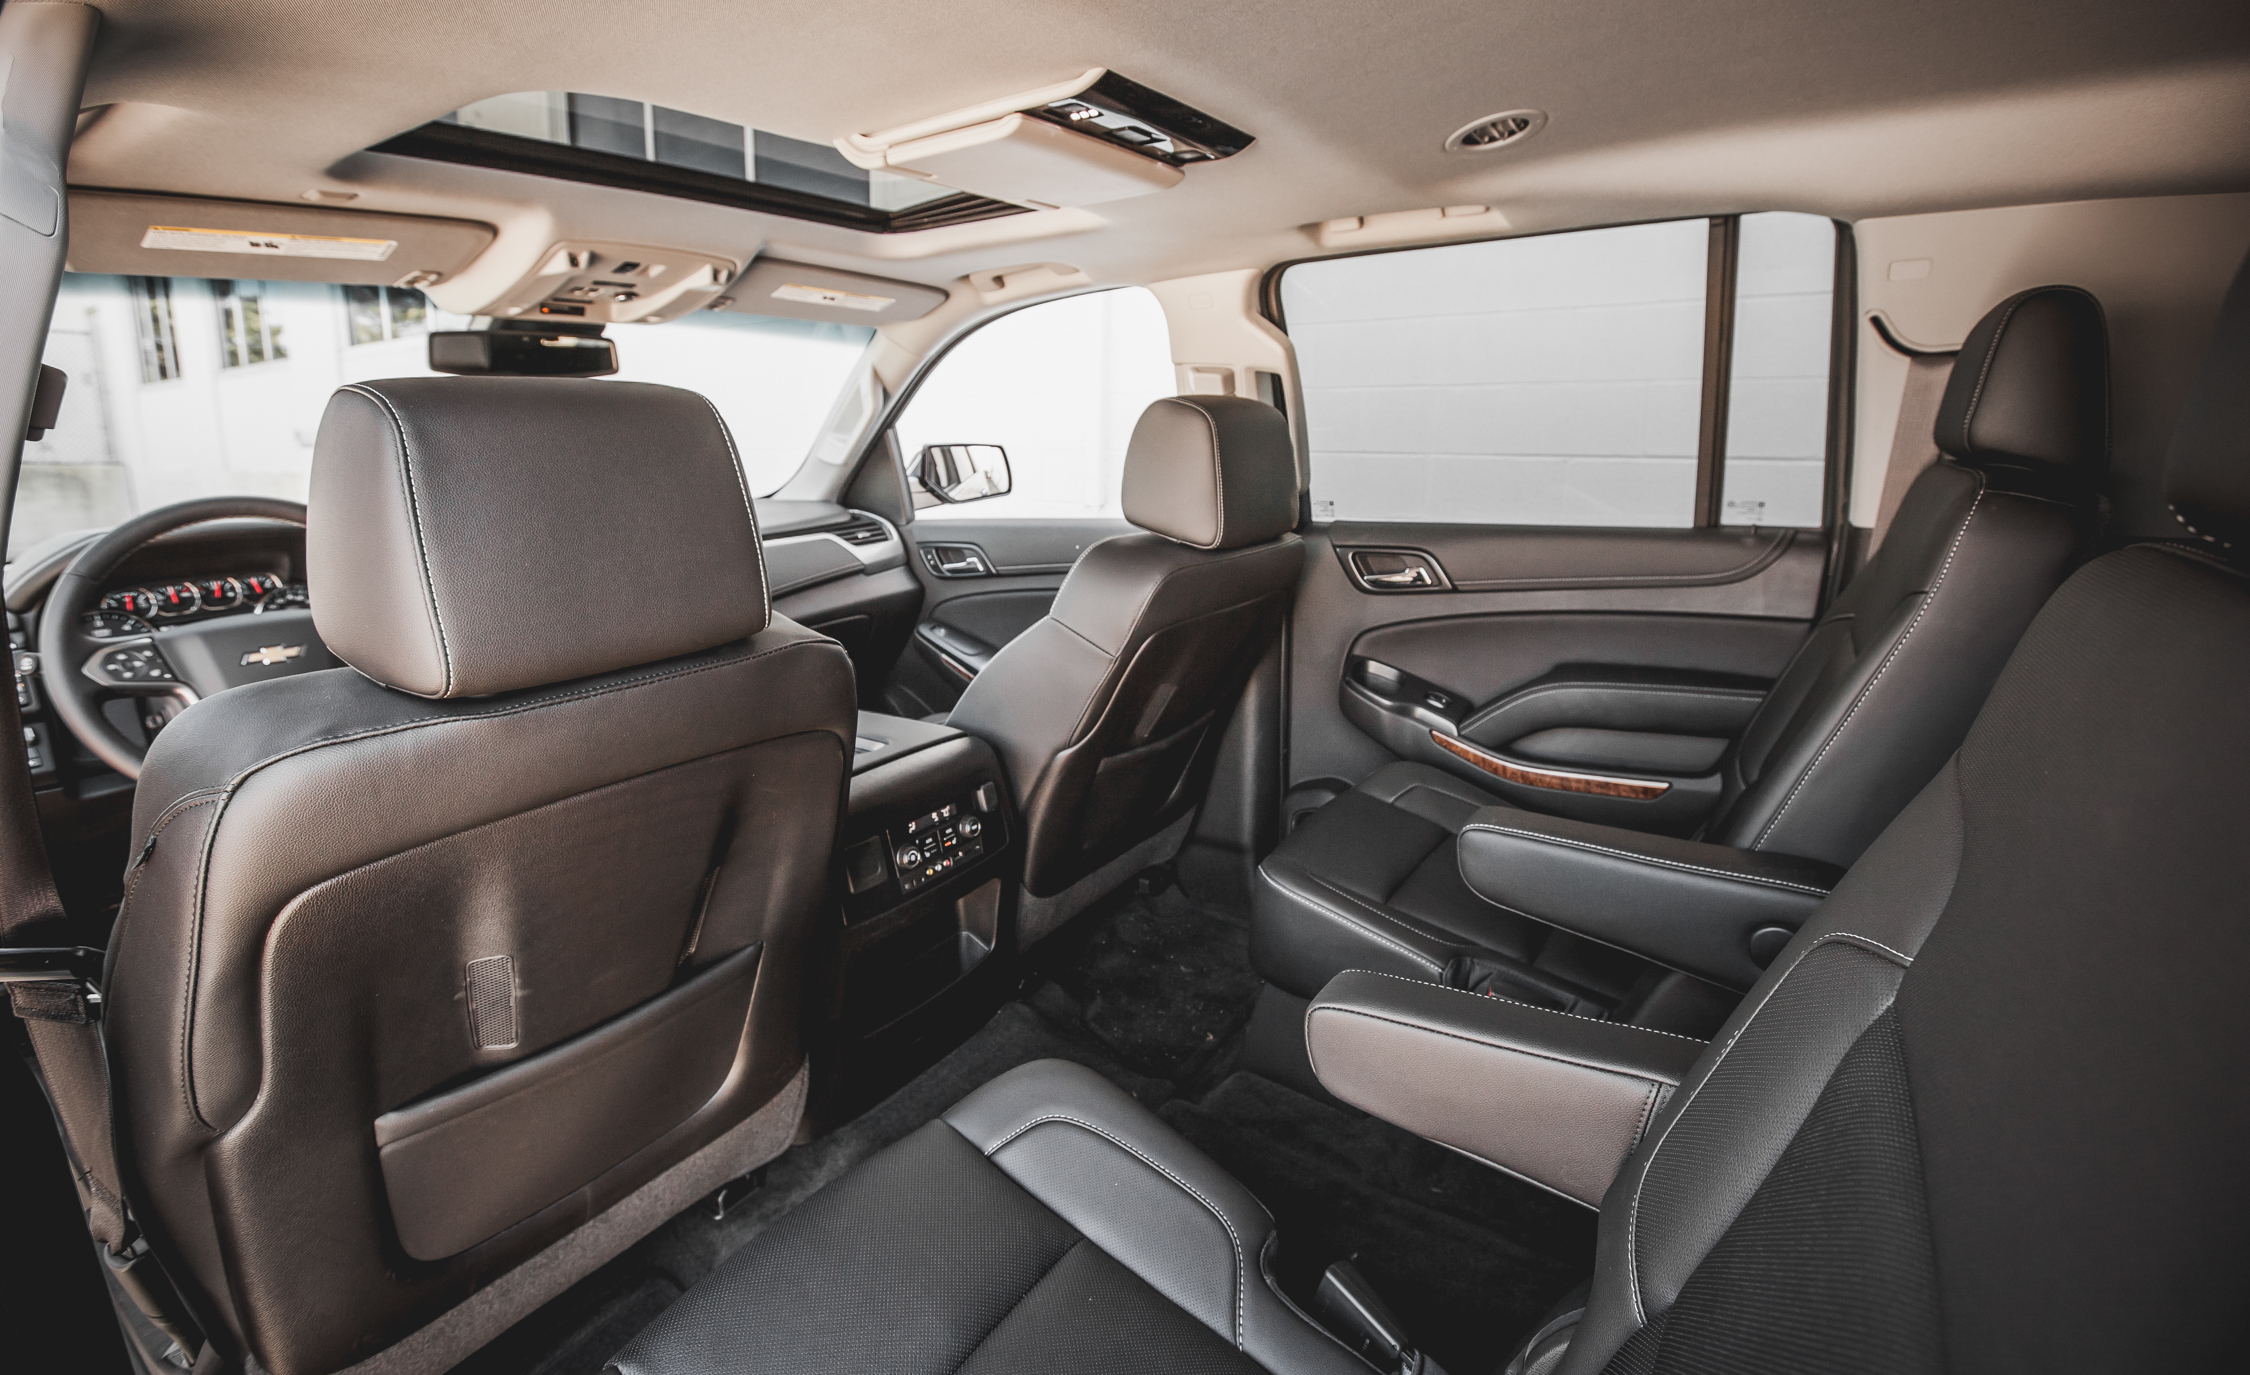 2015 Chevrolet Suburban LTZ Interior (Photo 18 of 33)